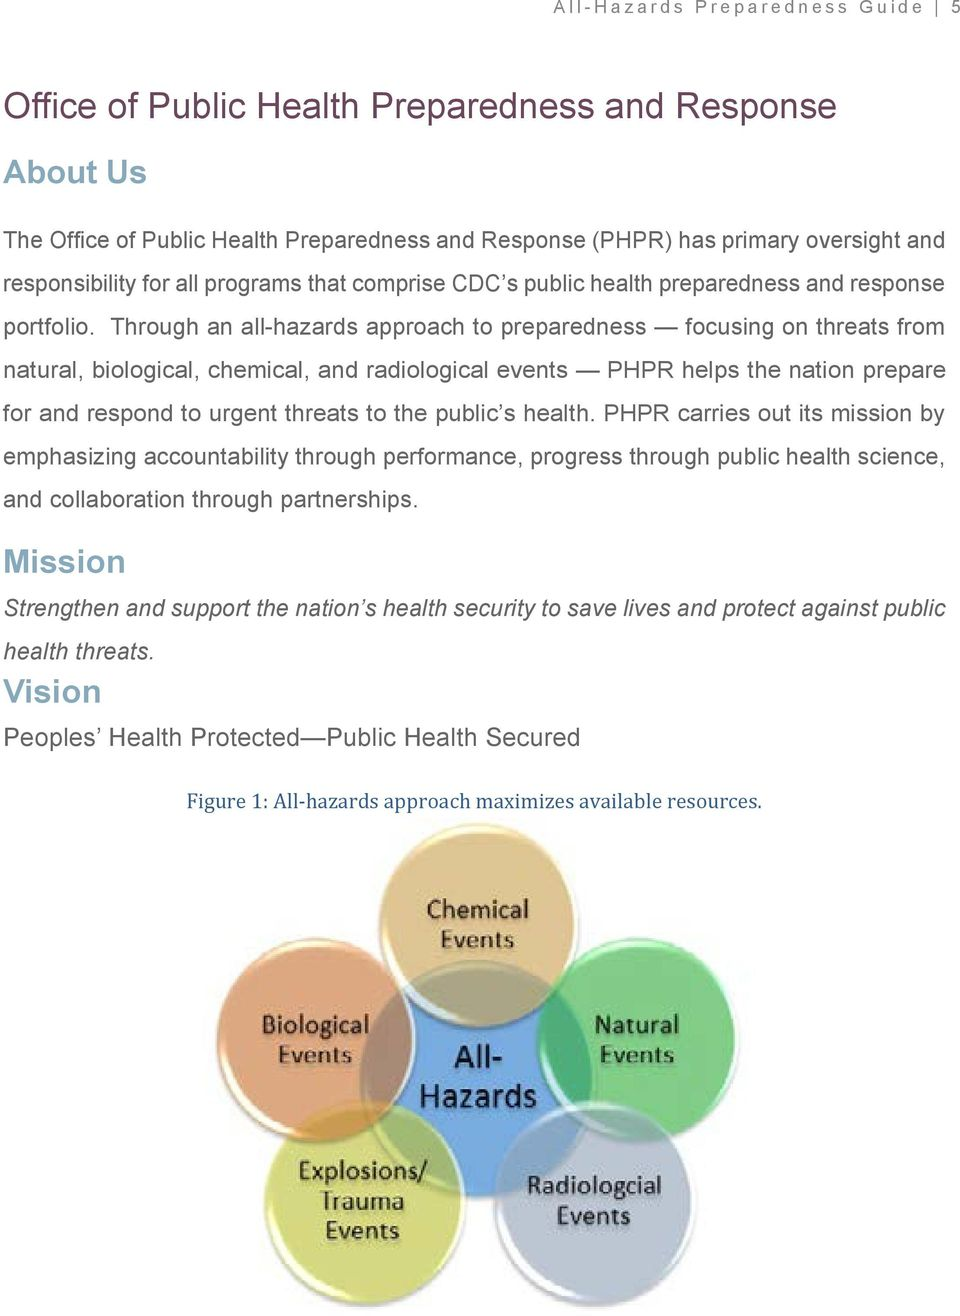 Through an all-hazards approach to preparedness focusing on threats from natural, biological, chemical, and radiological events PHPR helps the nation prepare for and respond to urgent threats to the